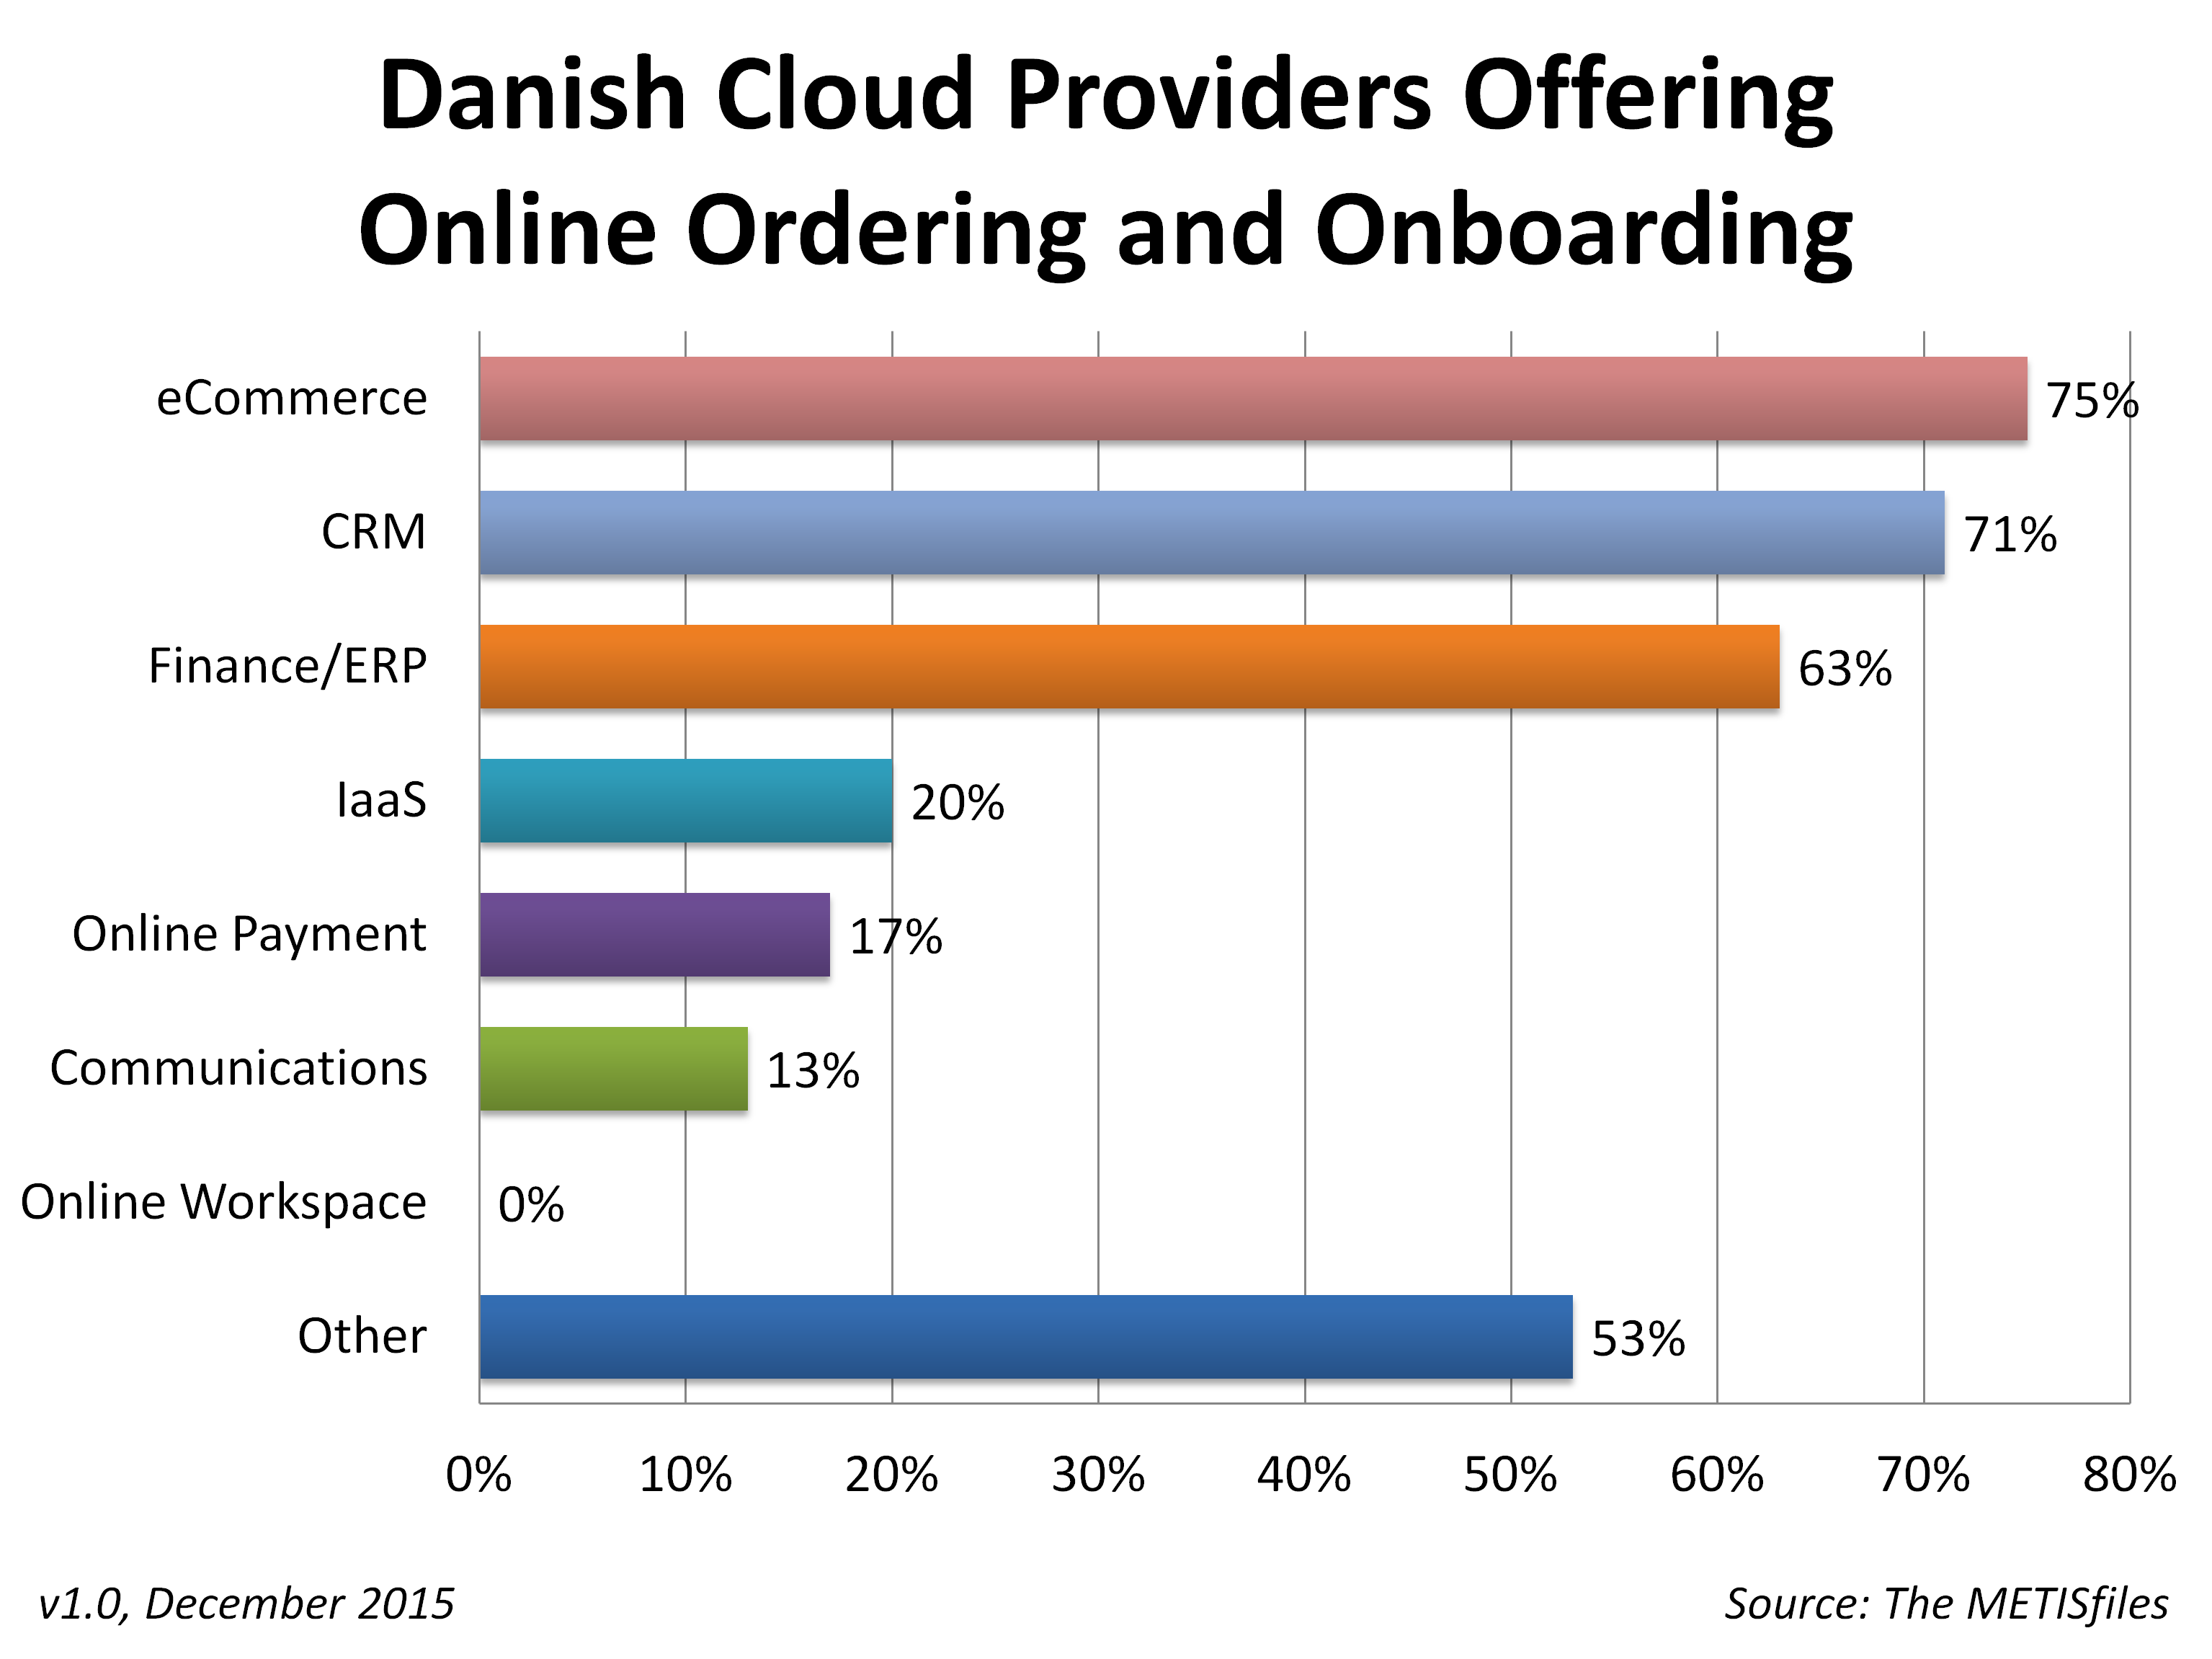 Danish Cloud Providers Online Ordering